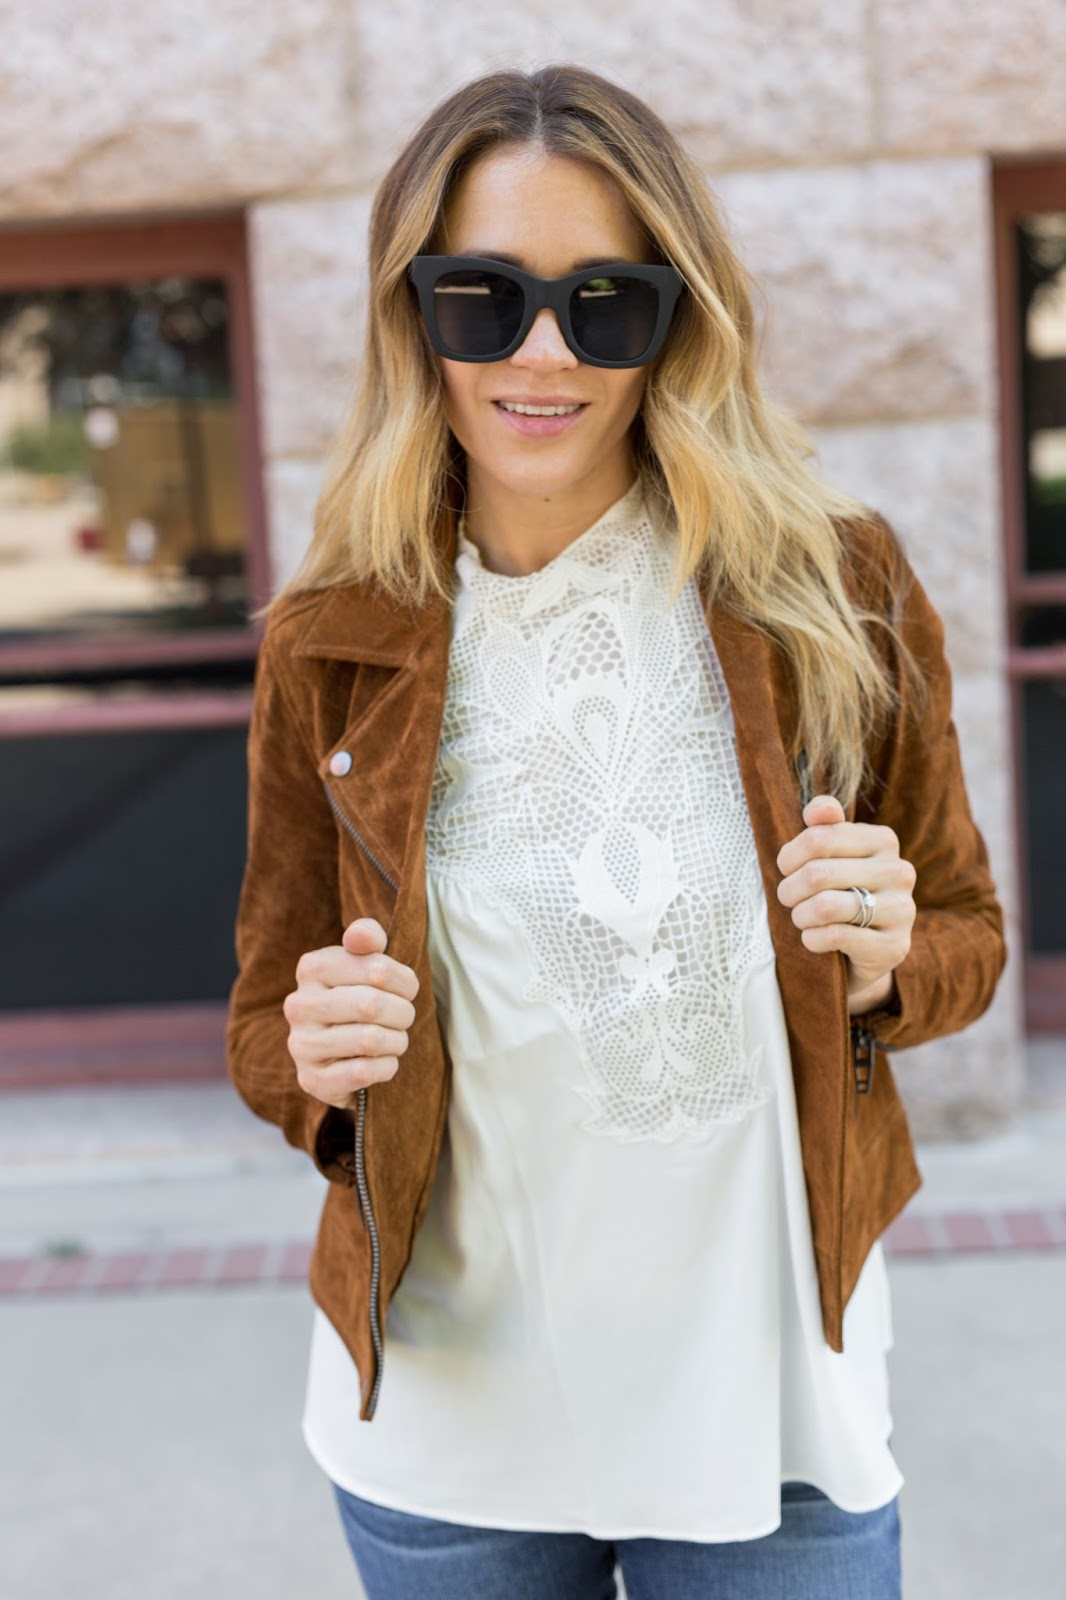 White Top and Rust Colored Jacket - The Must Have Brown Suede Jacket For Fall by Colorado fashion blog